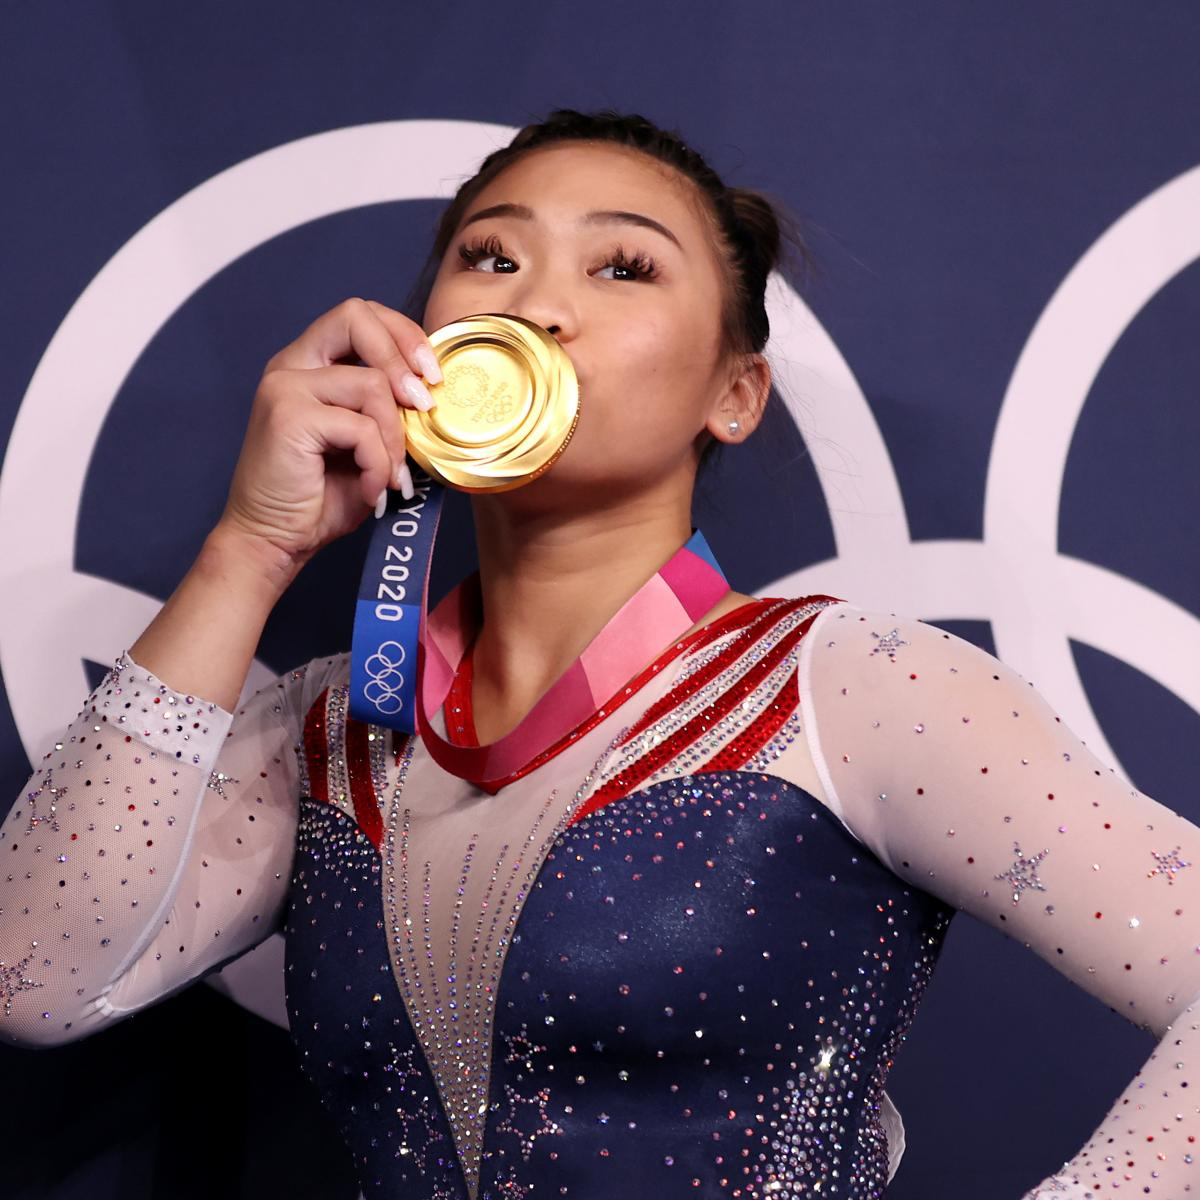 Sunisa Lee of Team United States poses with her gold medal after winning the Women's All-Around Final on day six of the Tokyo 2020 Olympic Games on July 29, 2021.